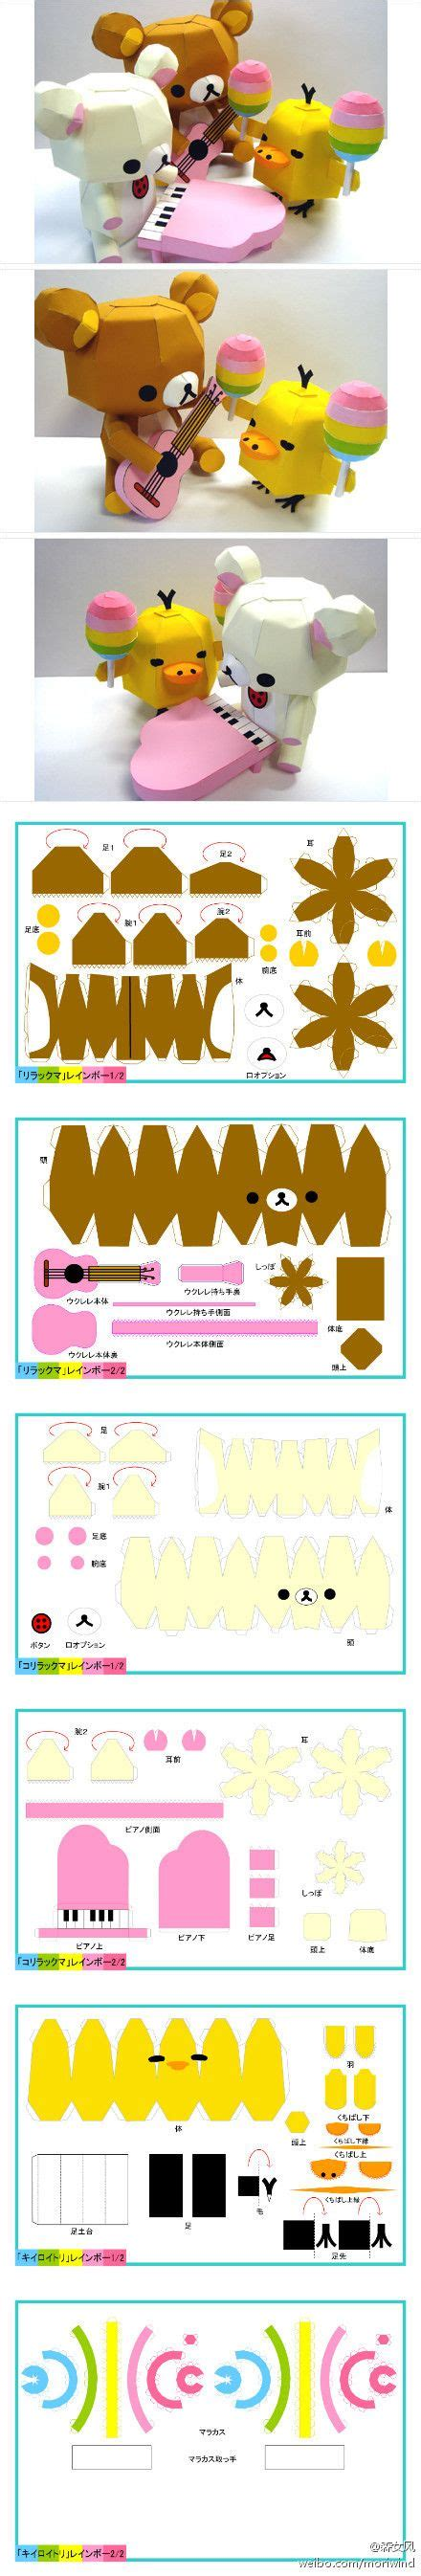 Rilakkuma Origami - 轻松熊 音乐组合 moldes caixas crafts kawaii and